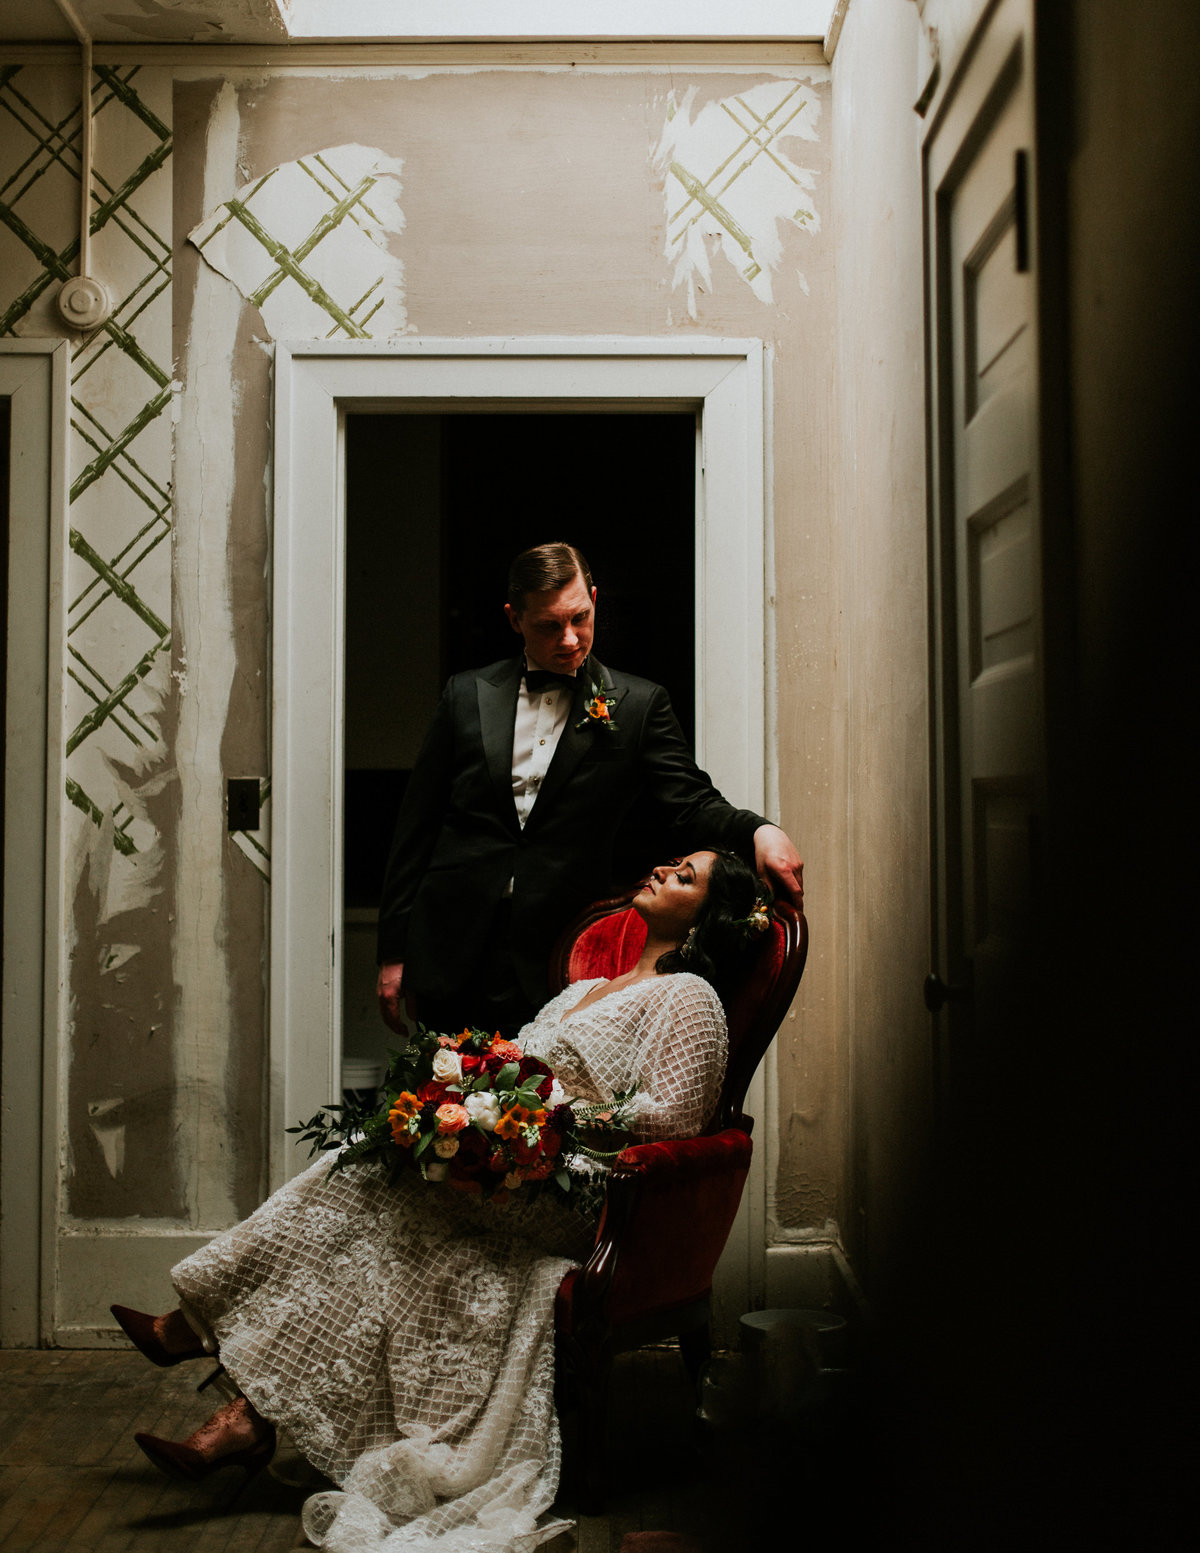 A bride sits in a lush red chair as her groom stands next to her with her bouquet from Gardenview Flowers